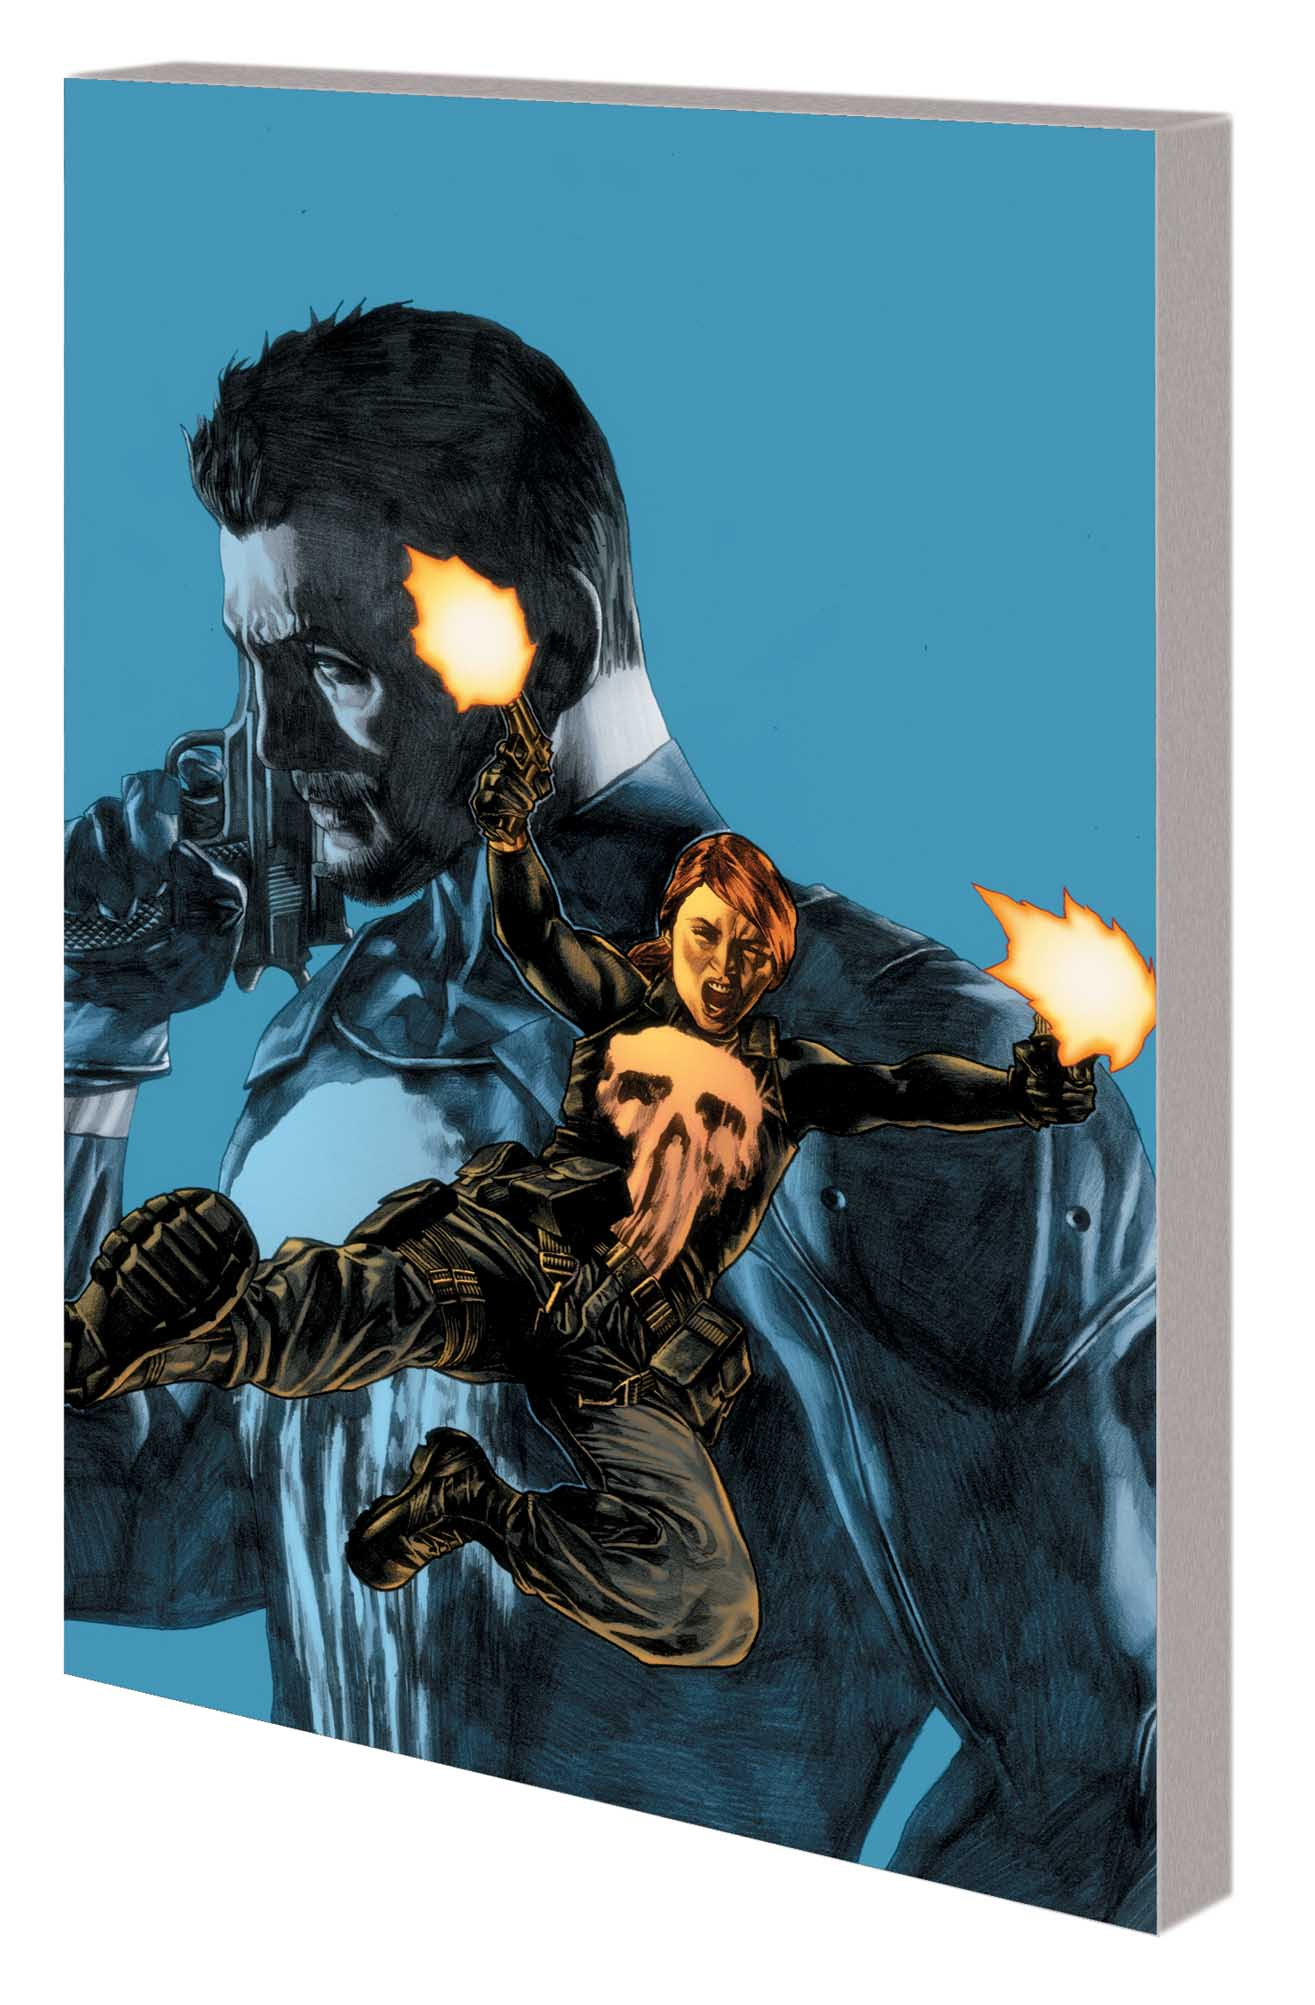 THE PUNISHER BY GREG RUCKA VOL. 3 TPB